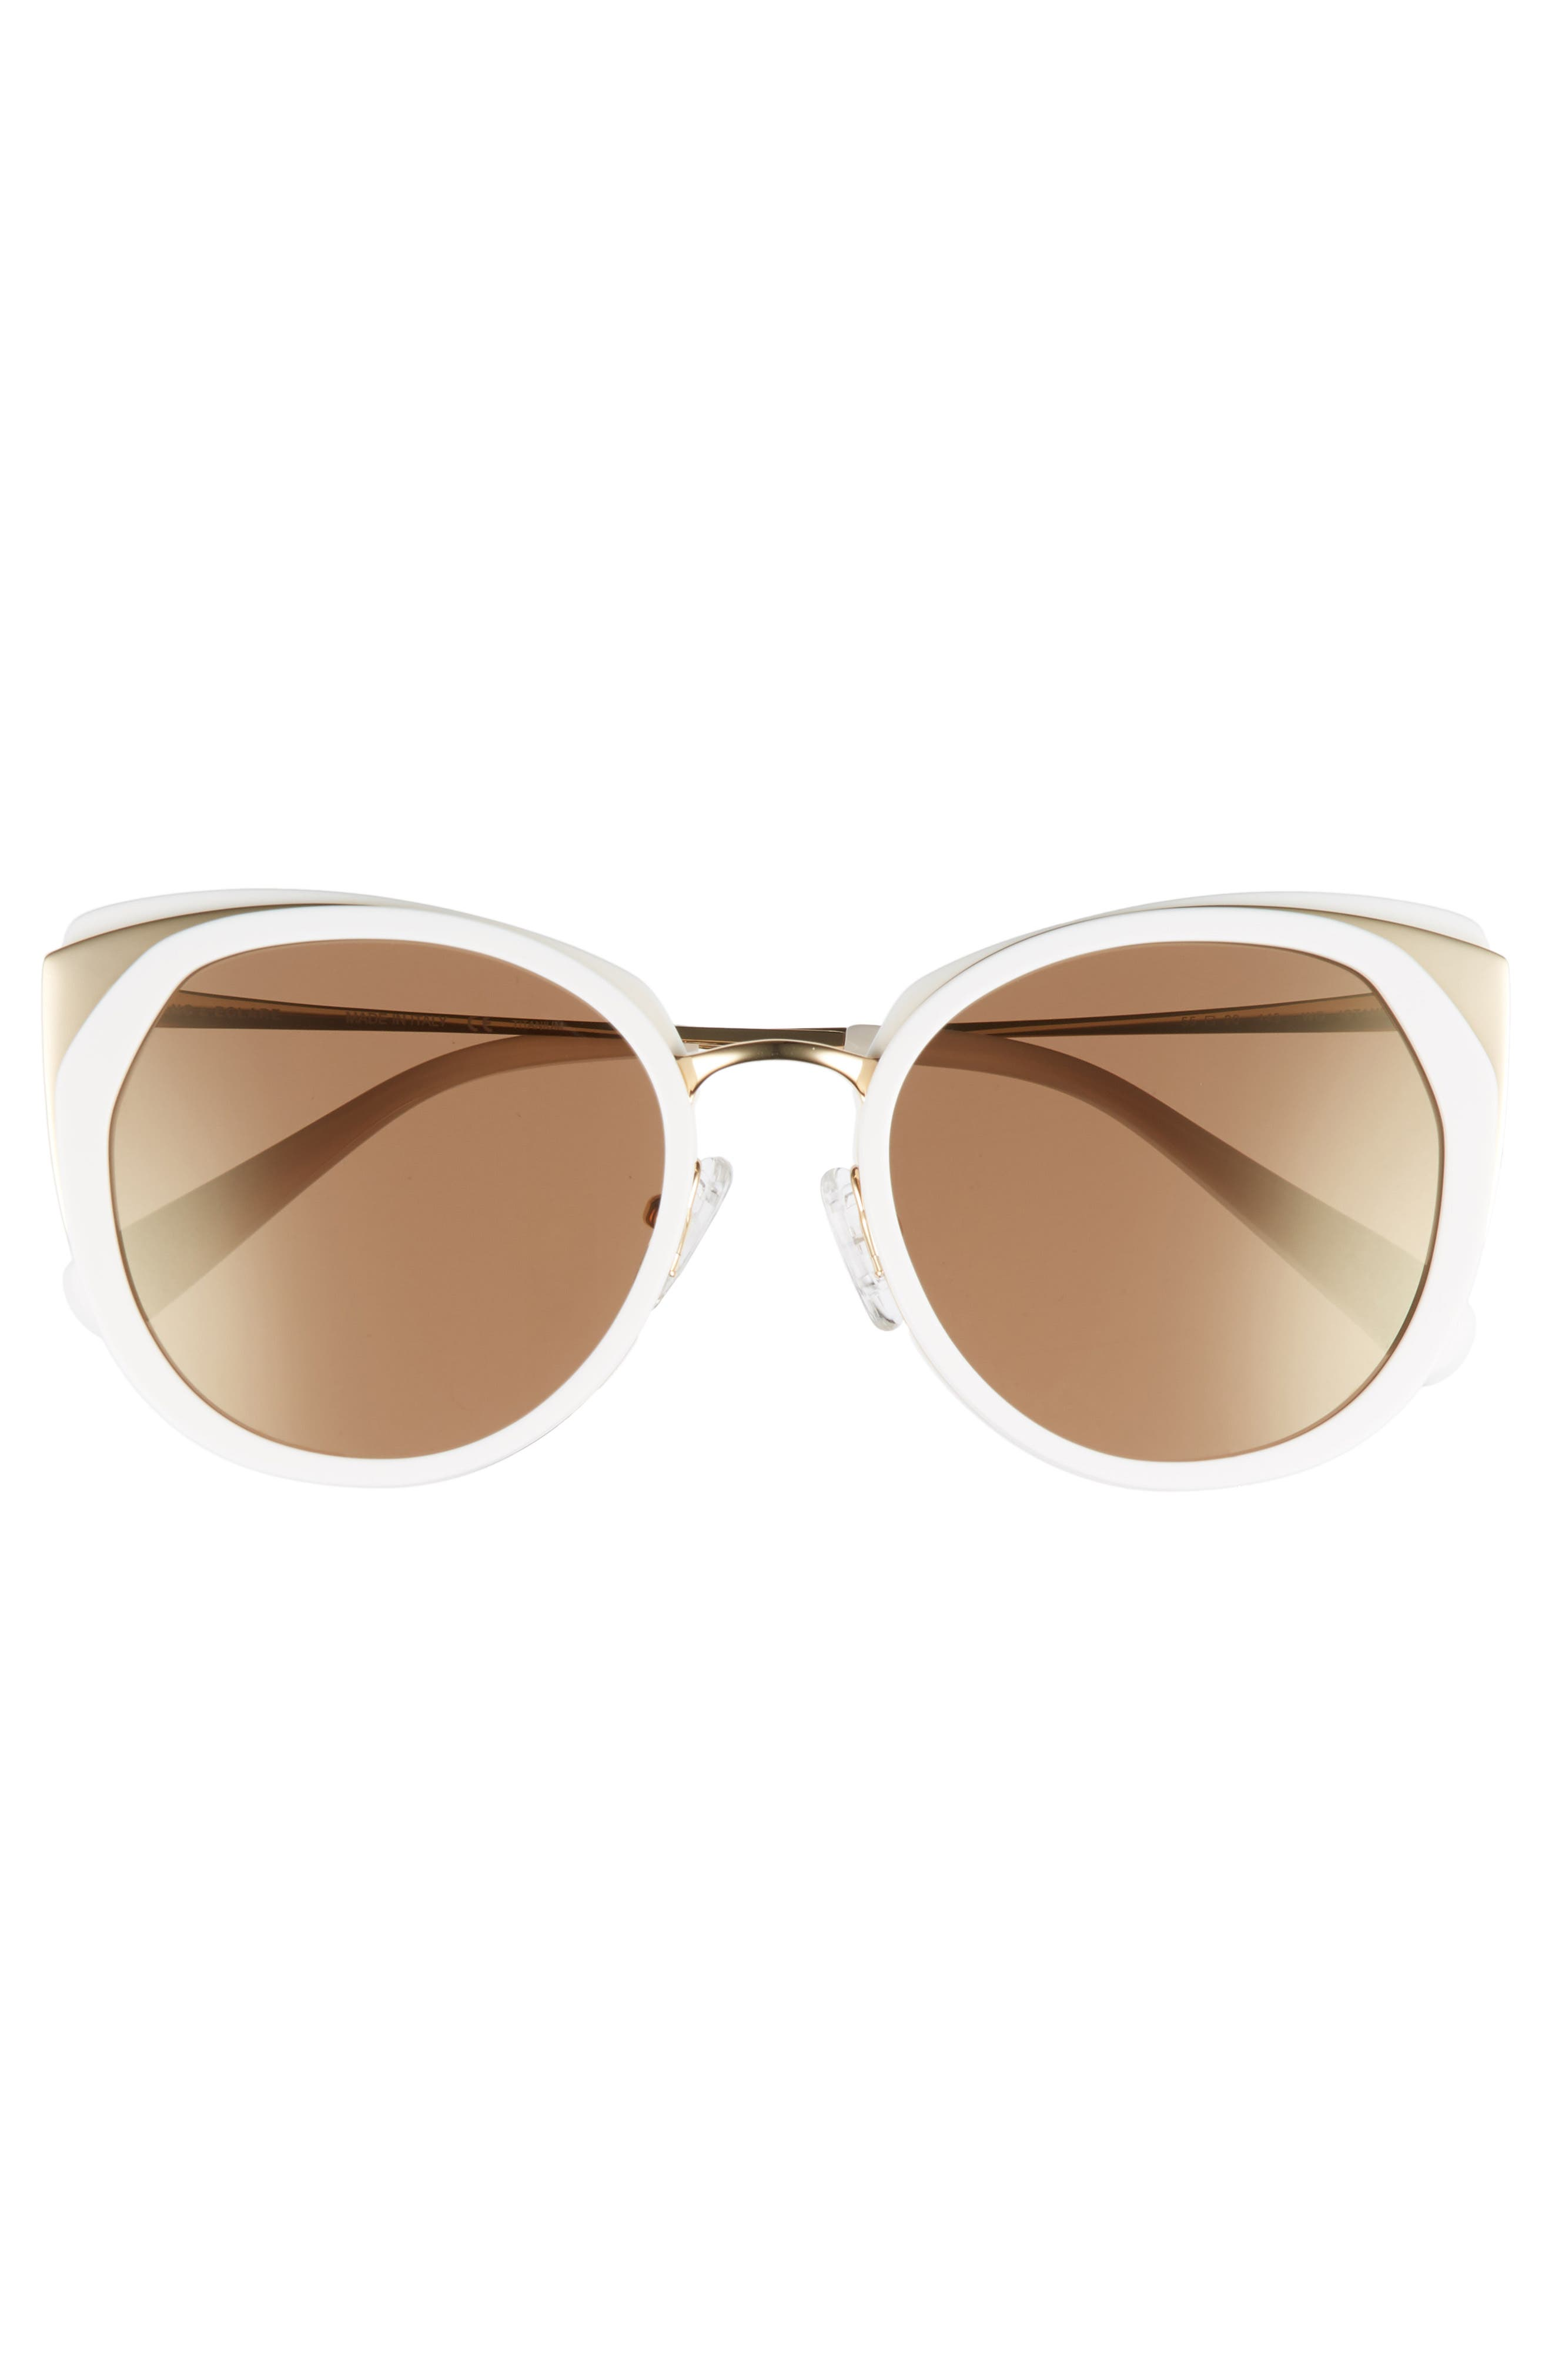 BLANC & ECLARE Istanbul 55mm Polarized Cat Eye Sunglasses,                             Alternate thumbnail 3, color,                             Snow/ Gold/ Solid Gold Mirror